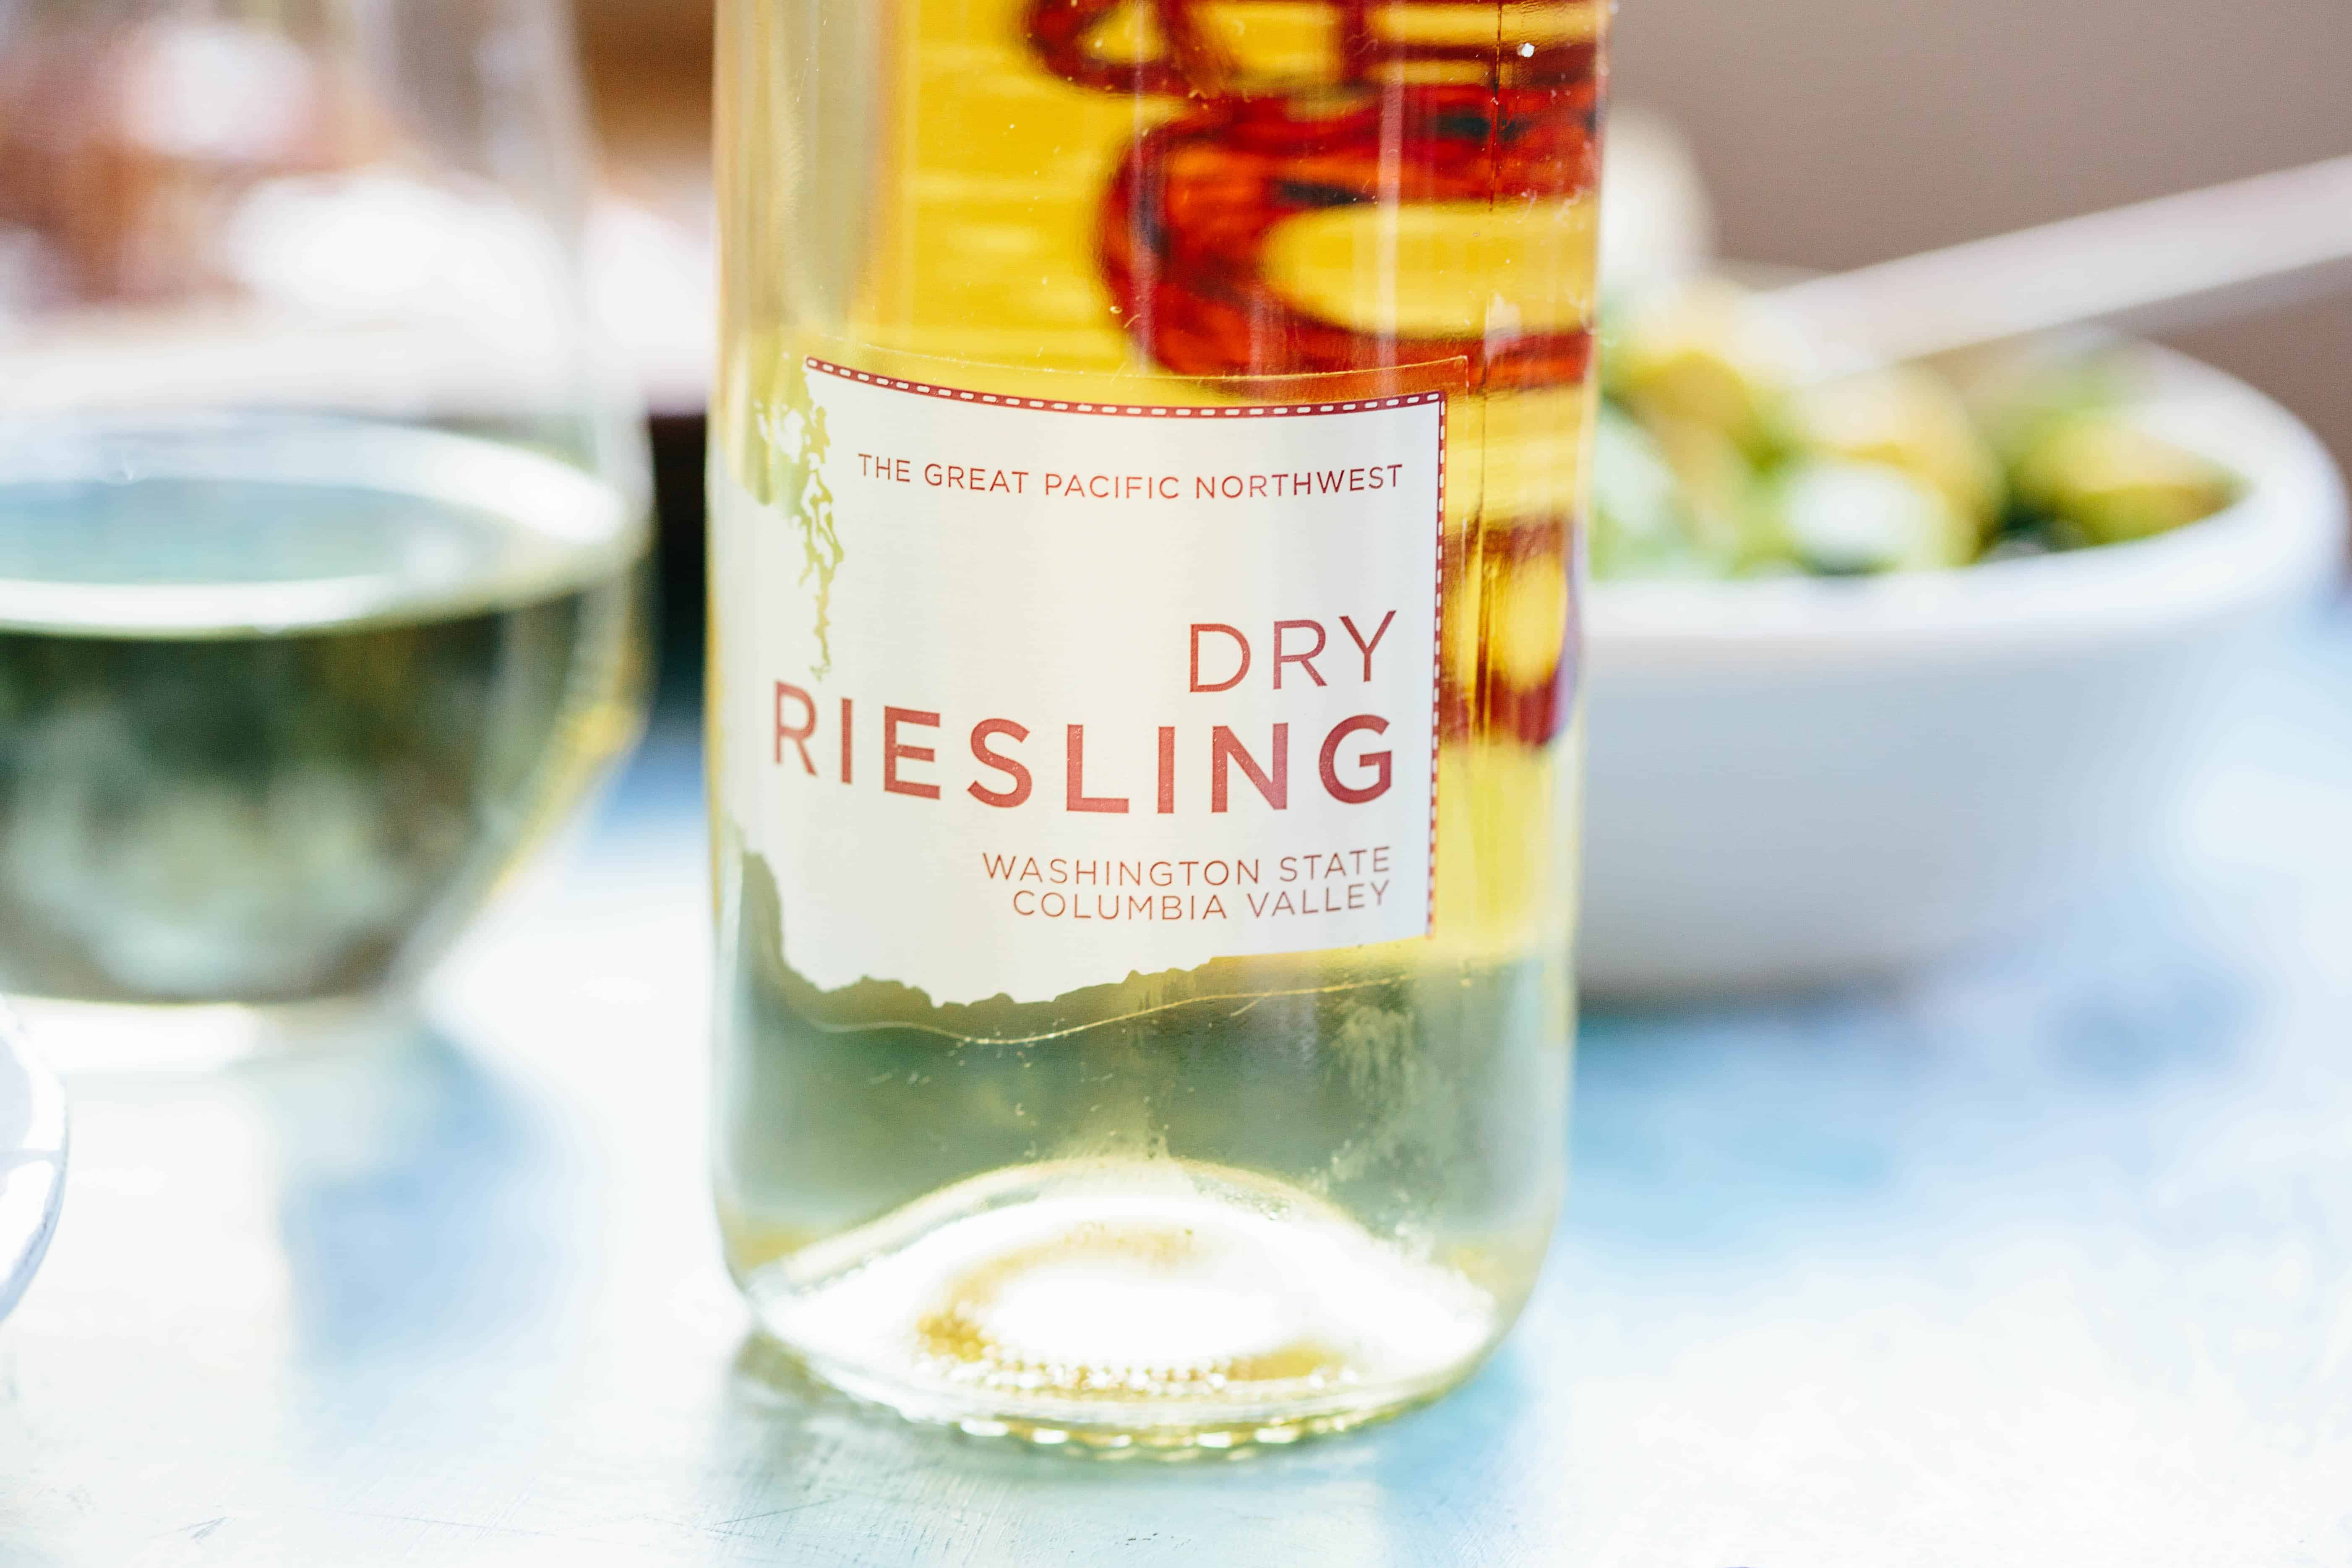 Close up of a bottle of dry riesling.